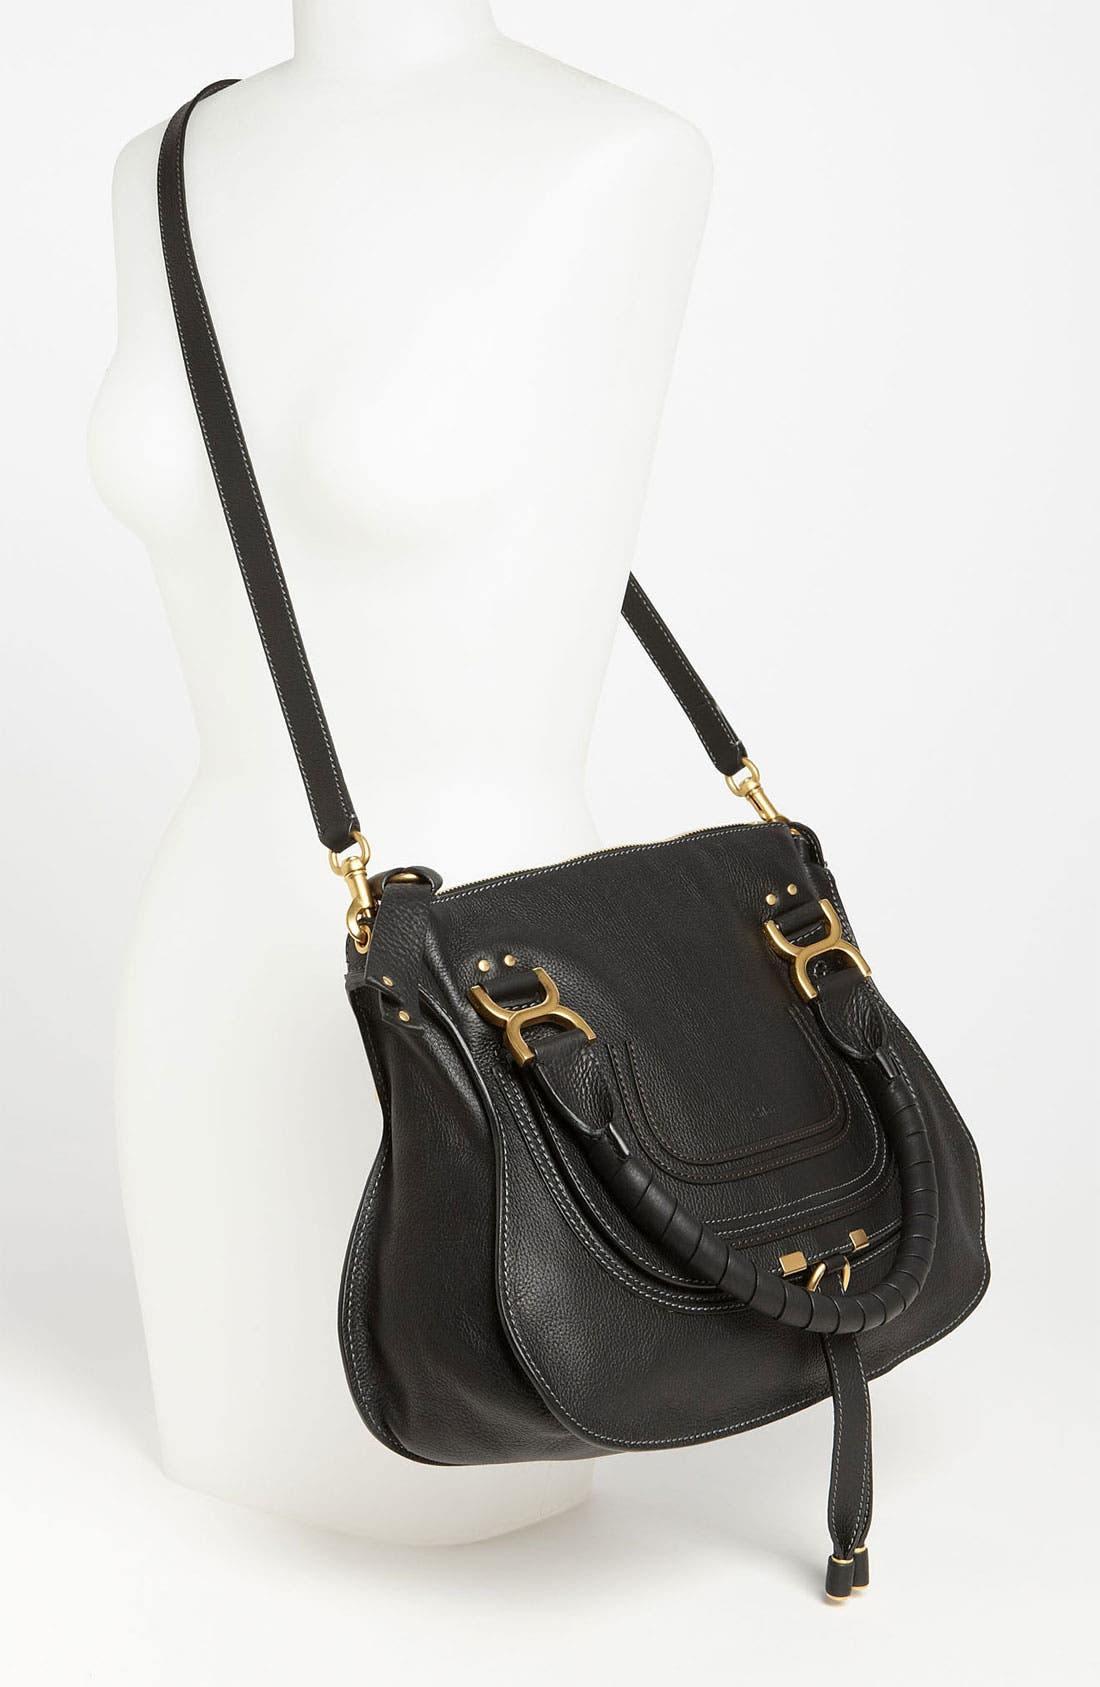 'Medium Marcie' Leather Satchel,                             Alternate thumbnail 8, color,                             BLACK GOLD HRDWRE